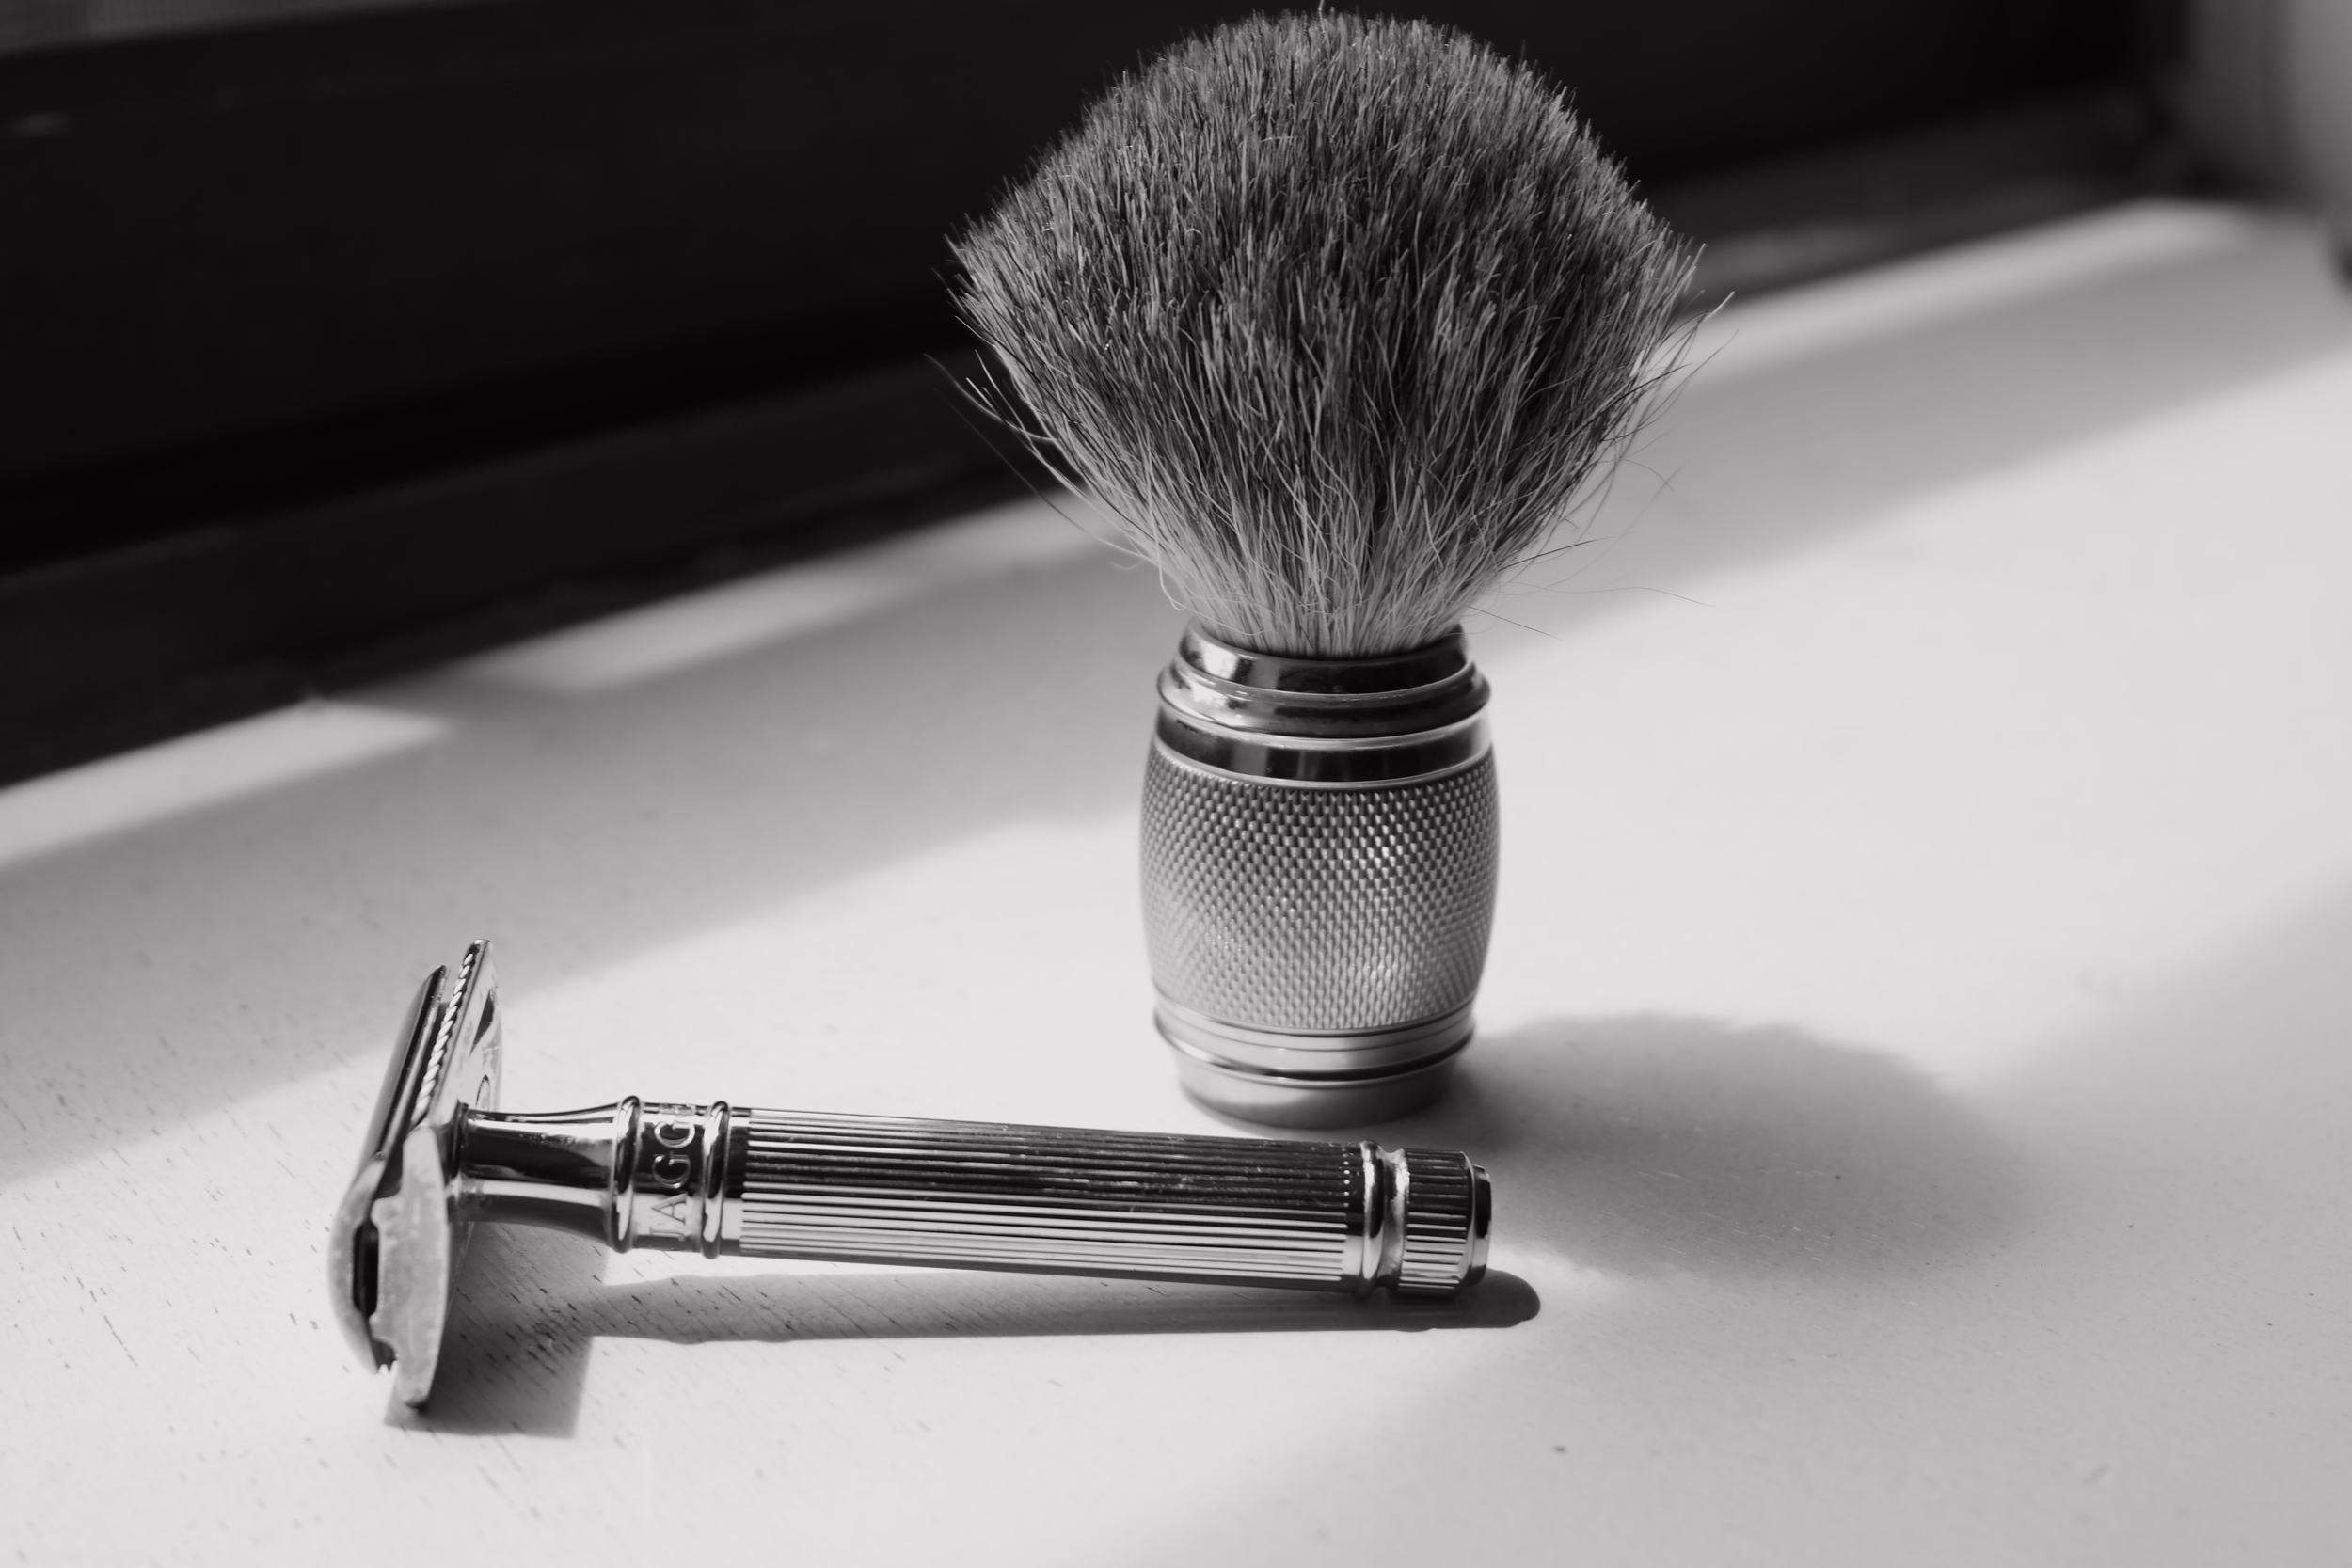 """ Shaving Essentials "" by  Barney Bishop  is licensed under  CC BY-ND 2.0 ."